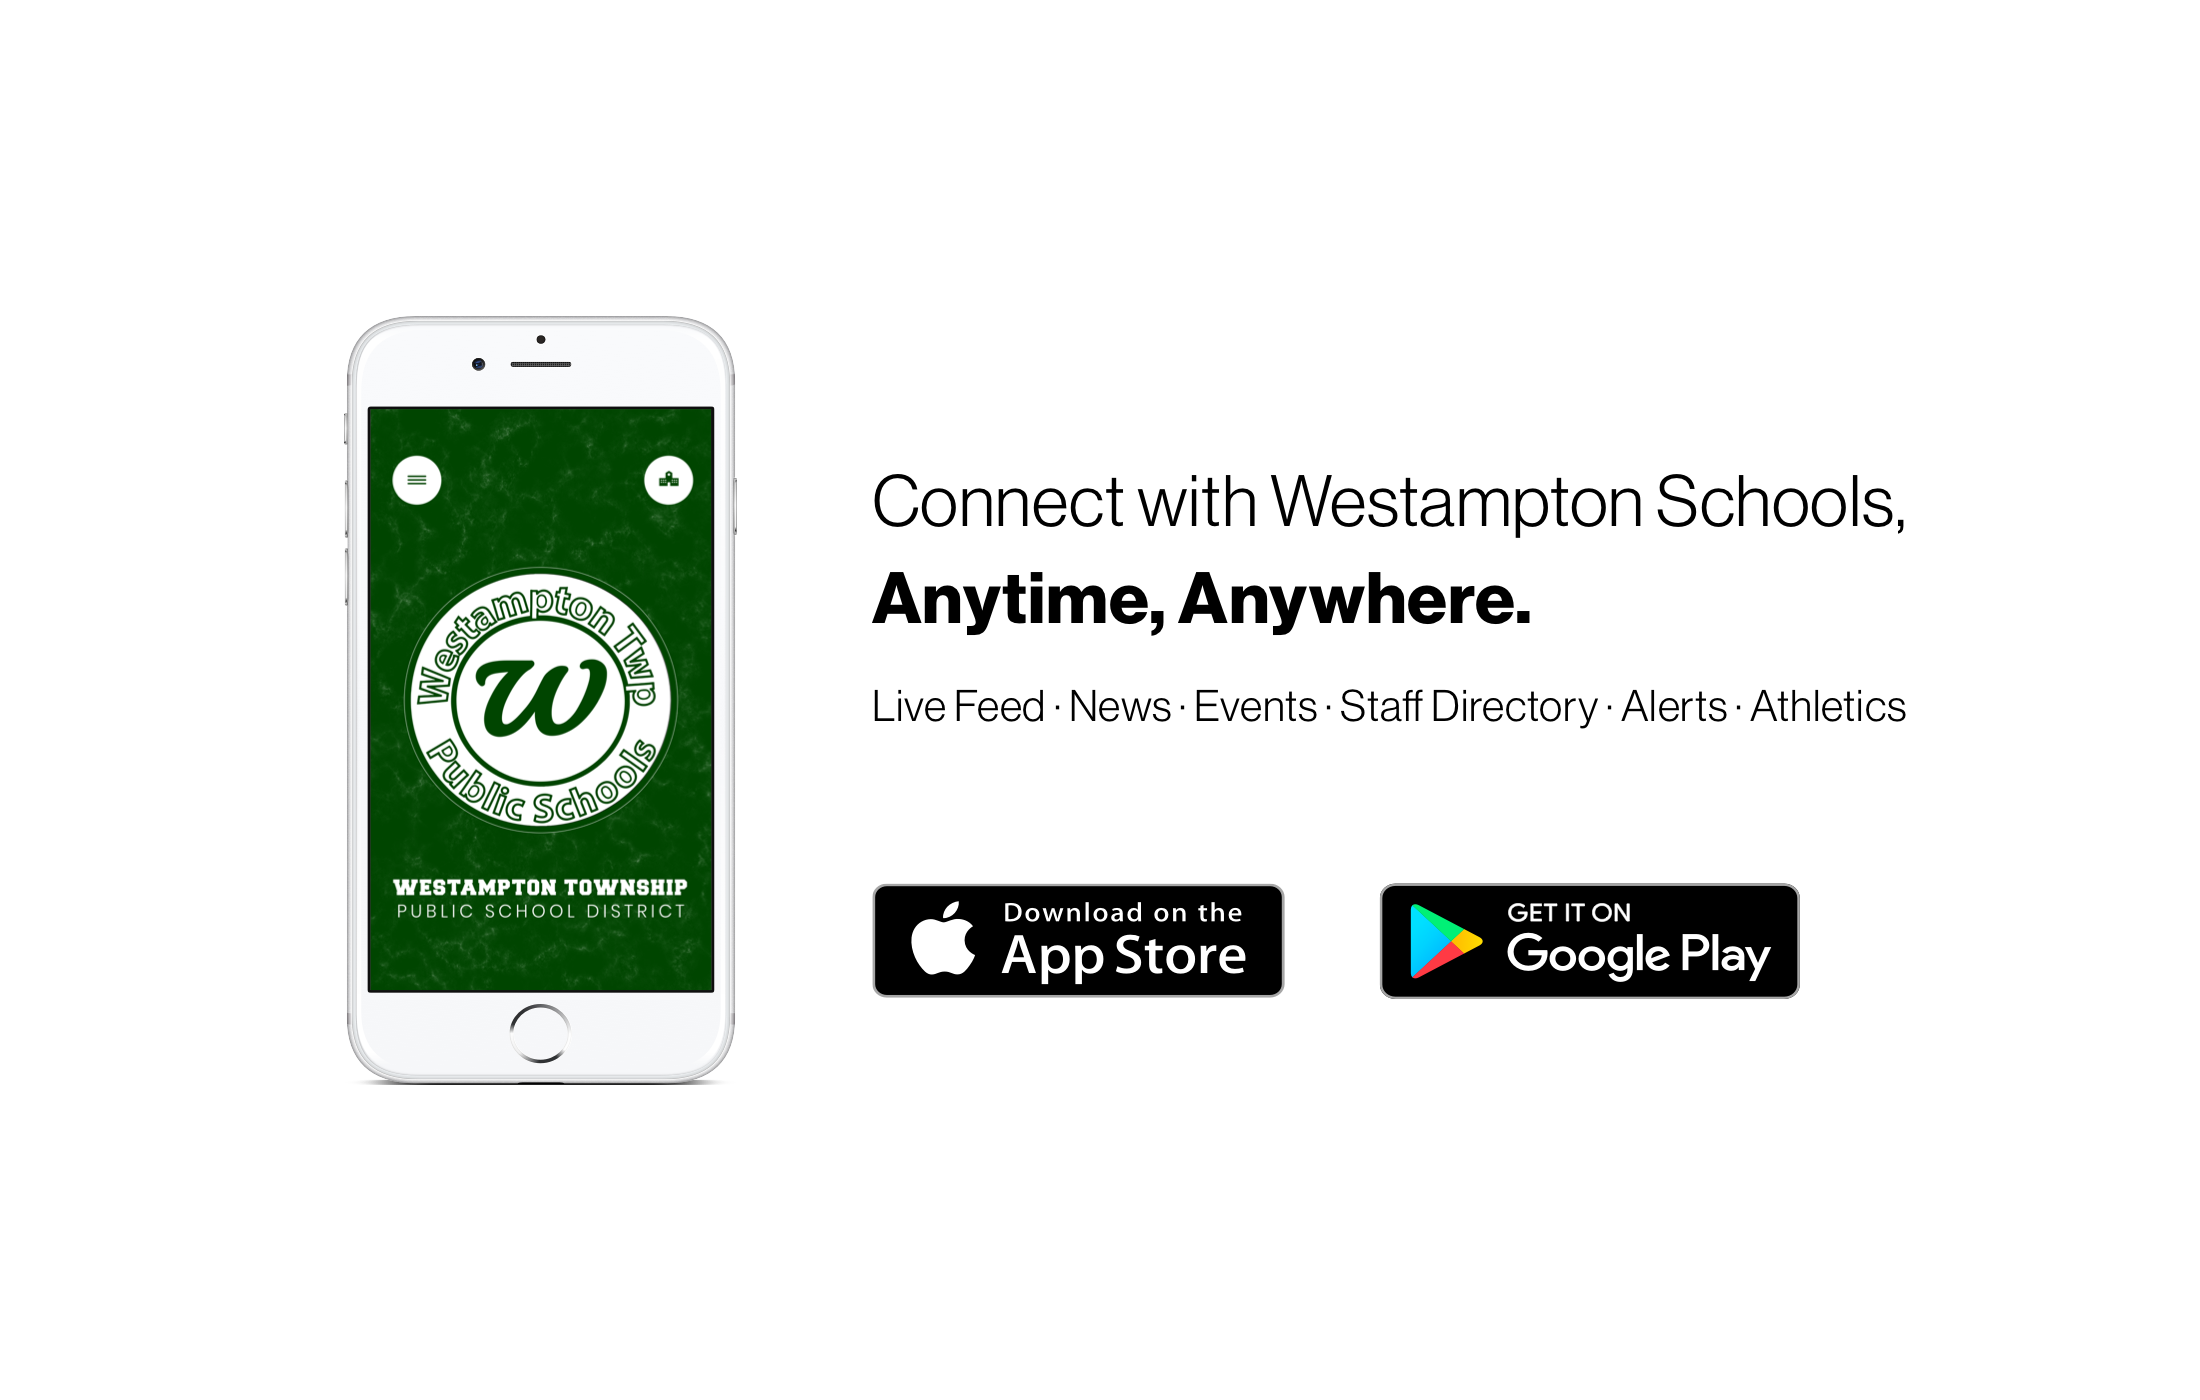 connect with westampton